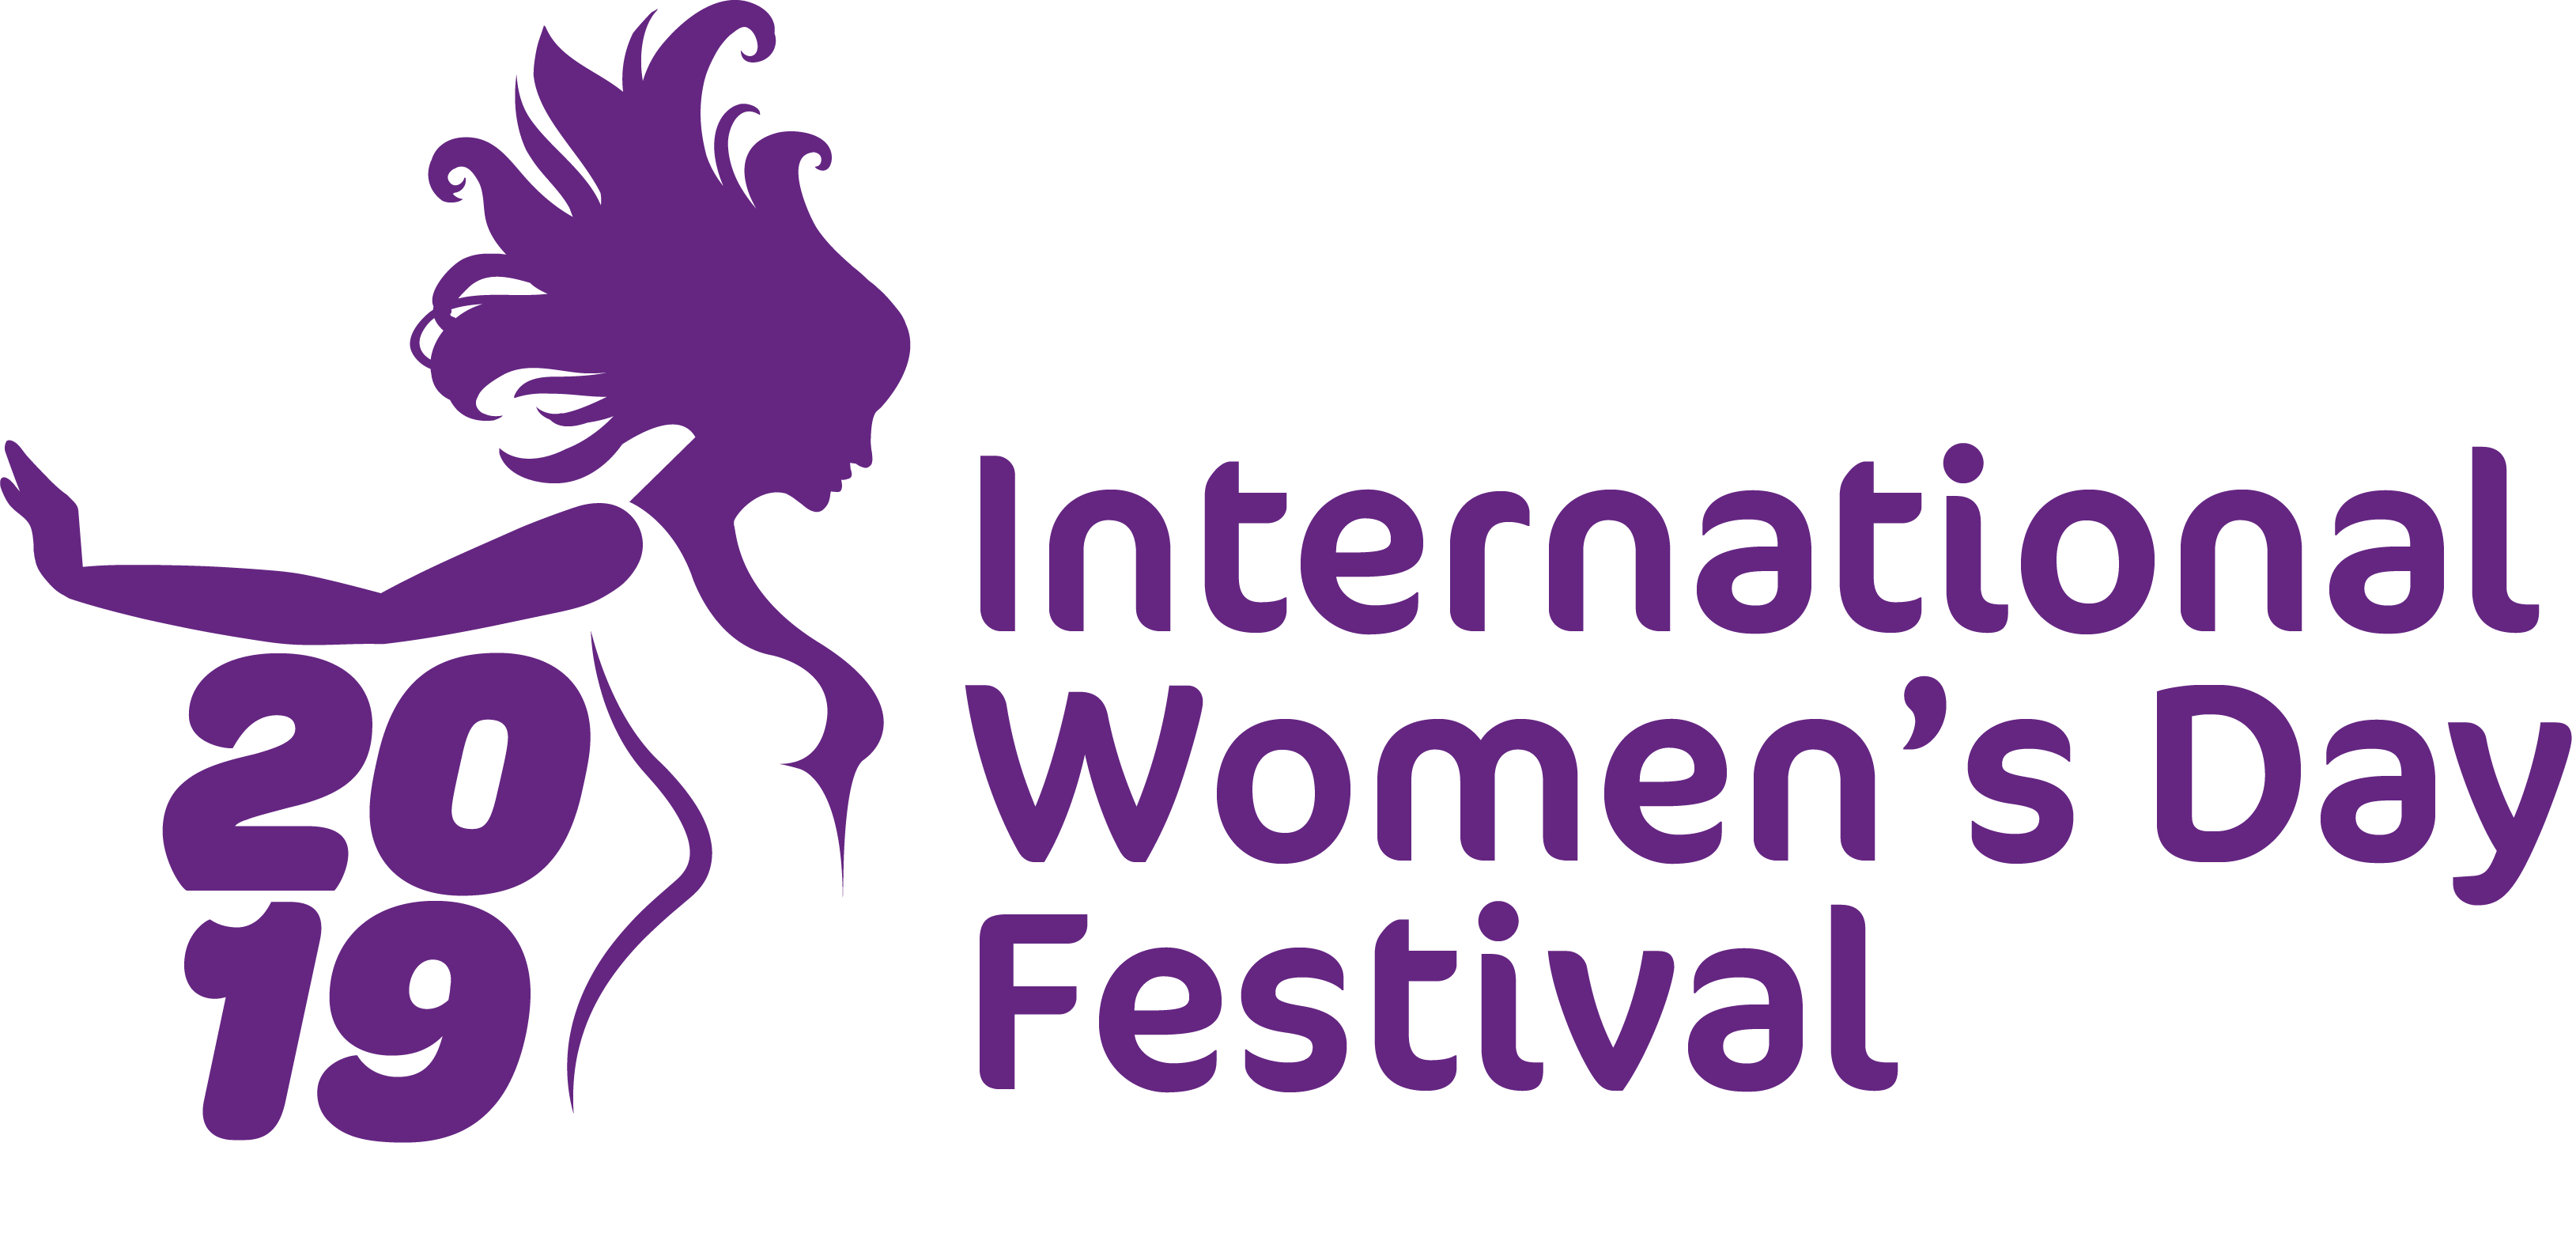 International Women's Day Festival 2019.